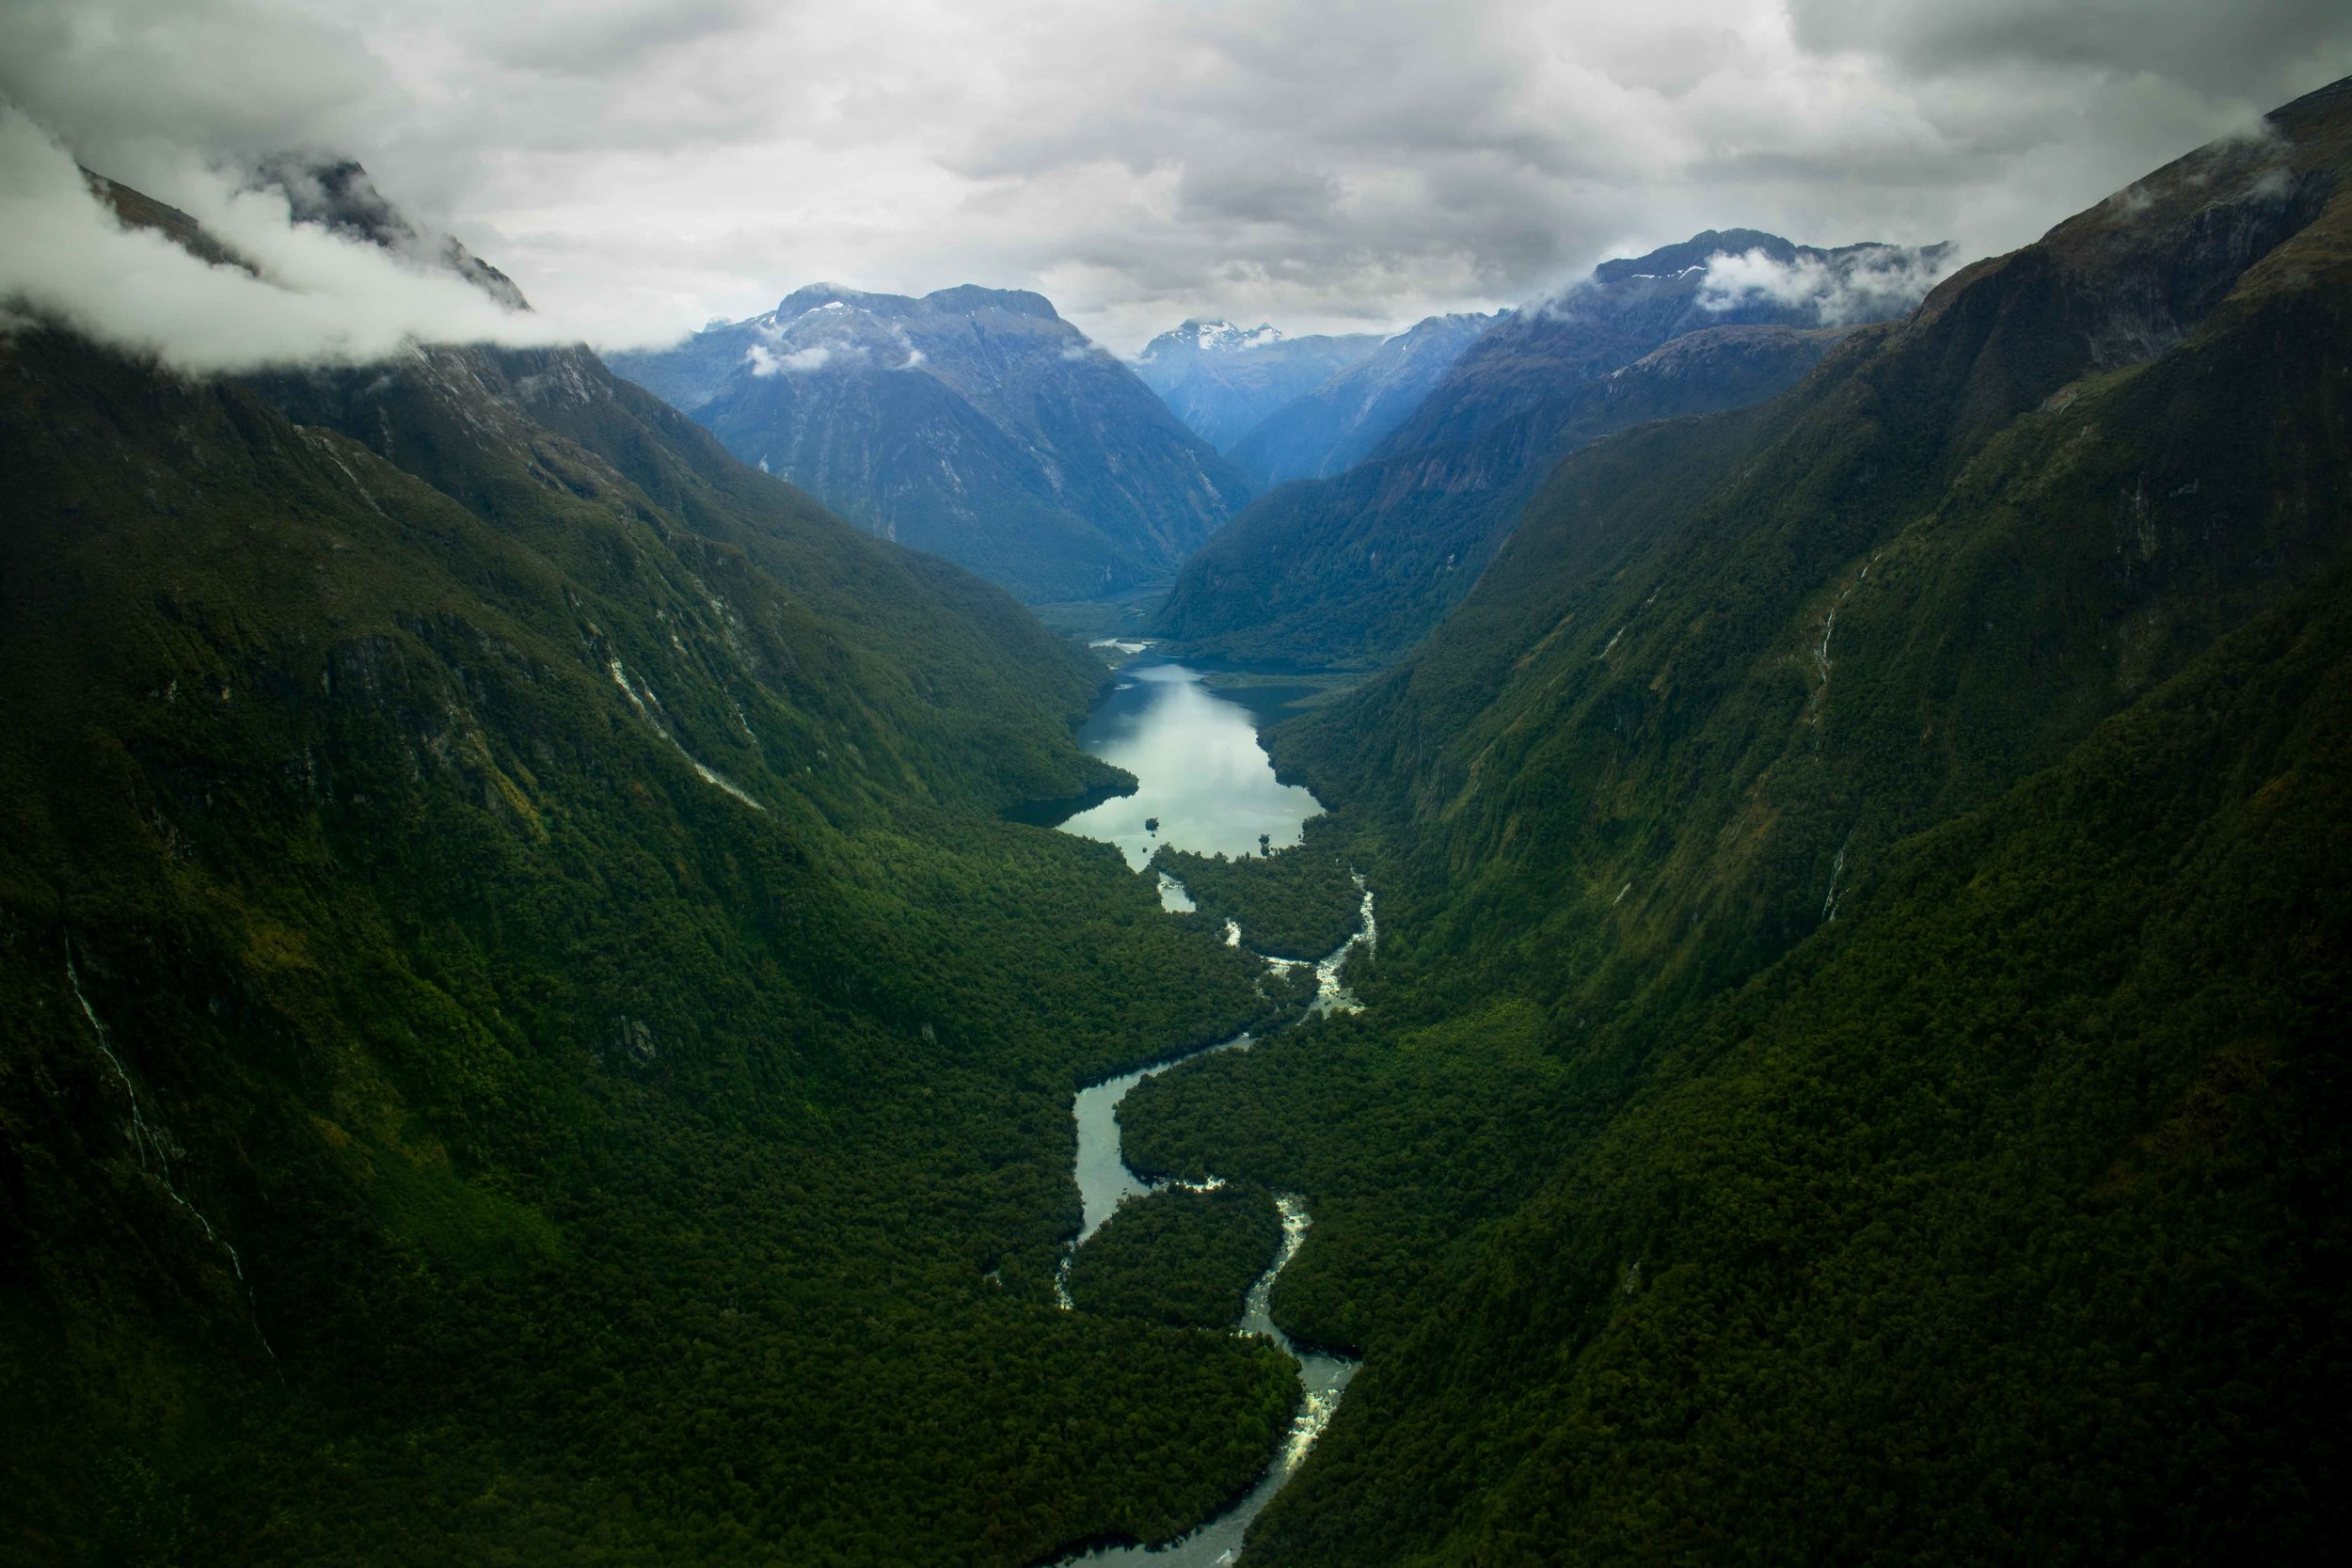 Somewhere in New Zealand...